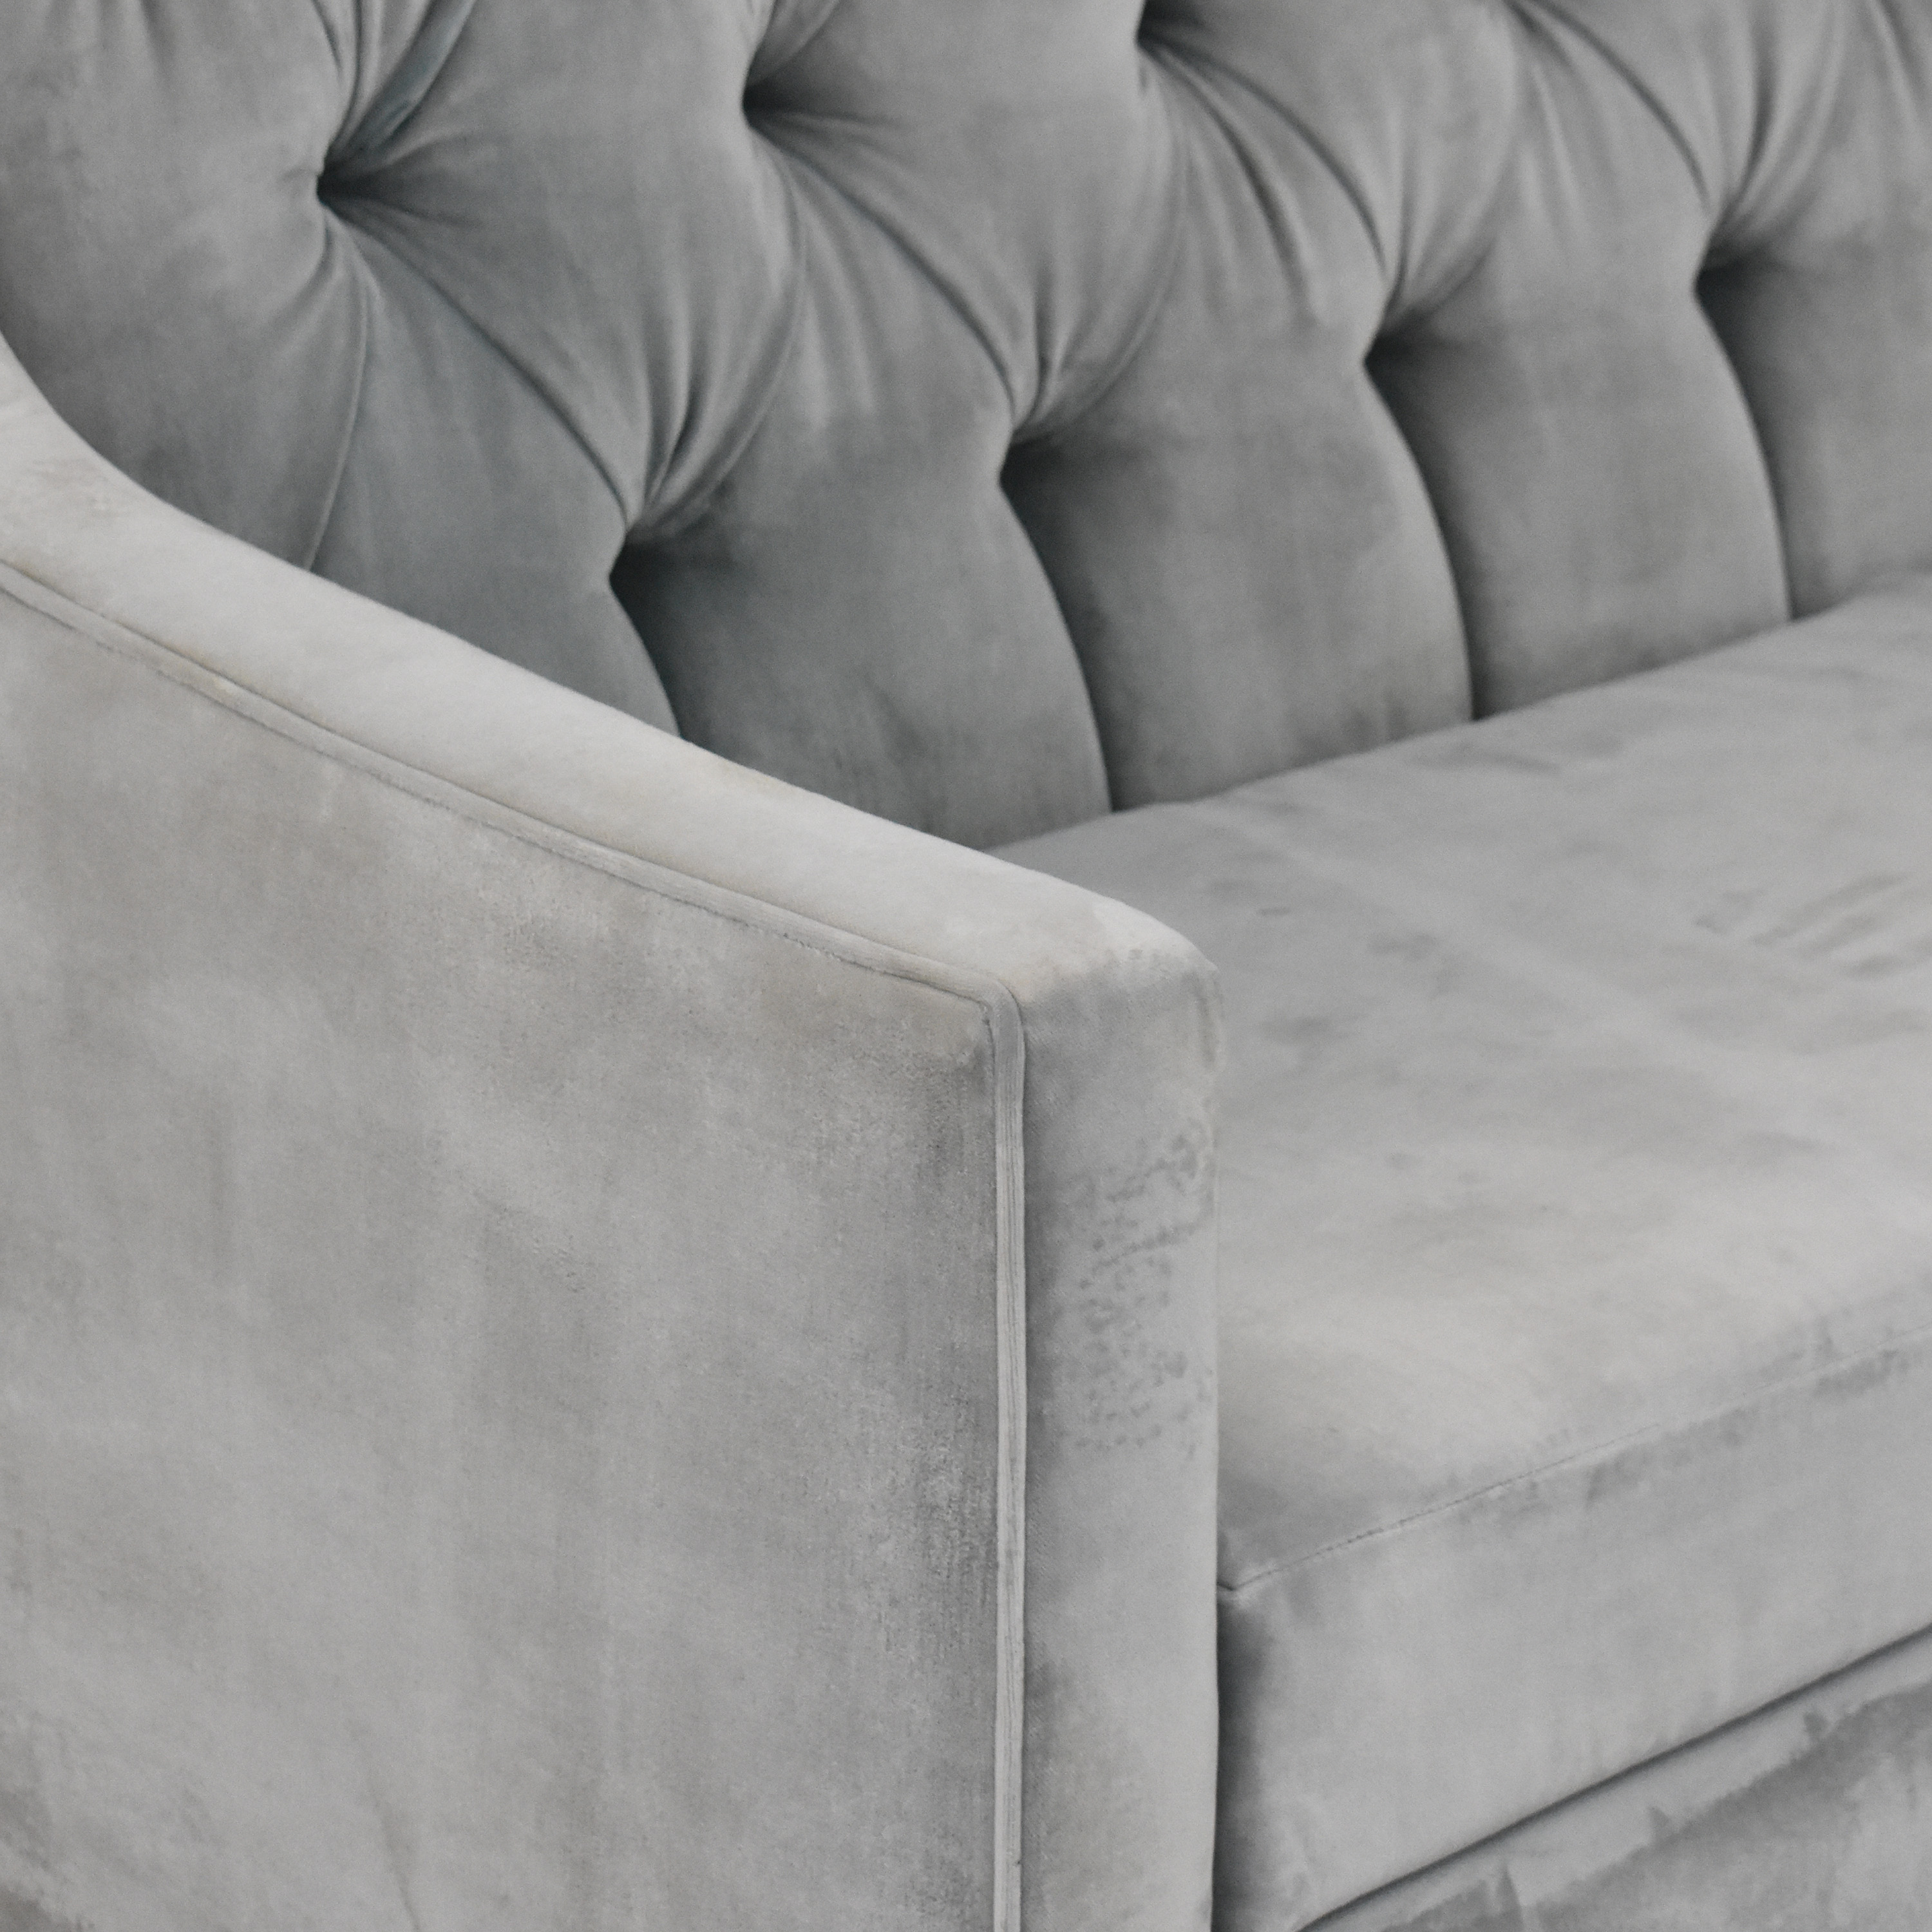 Tufted Upholstered Sofa price